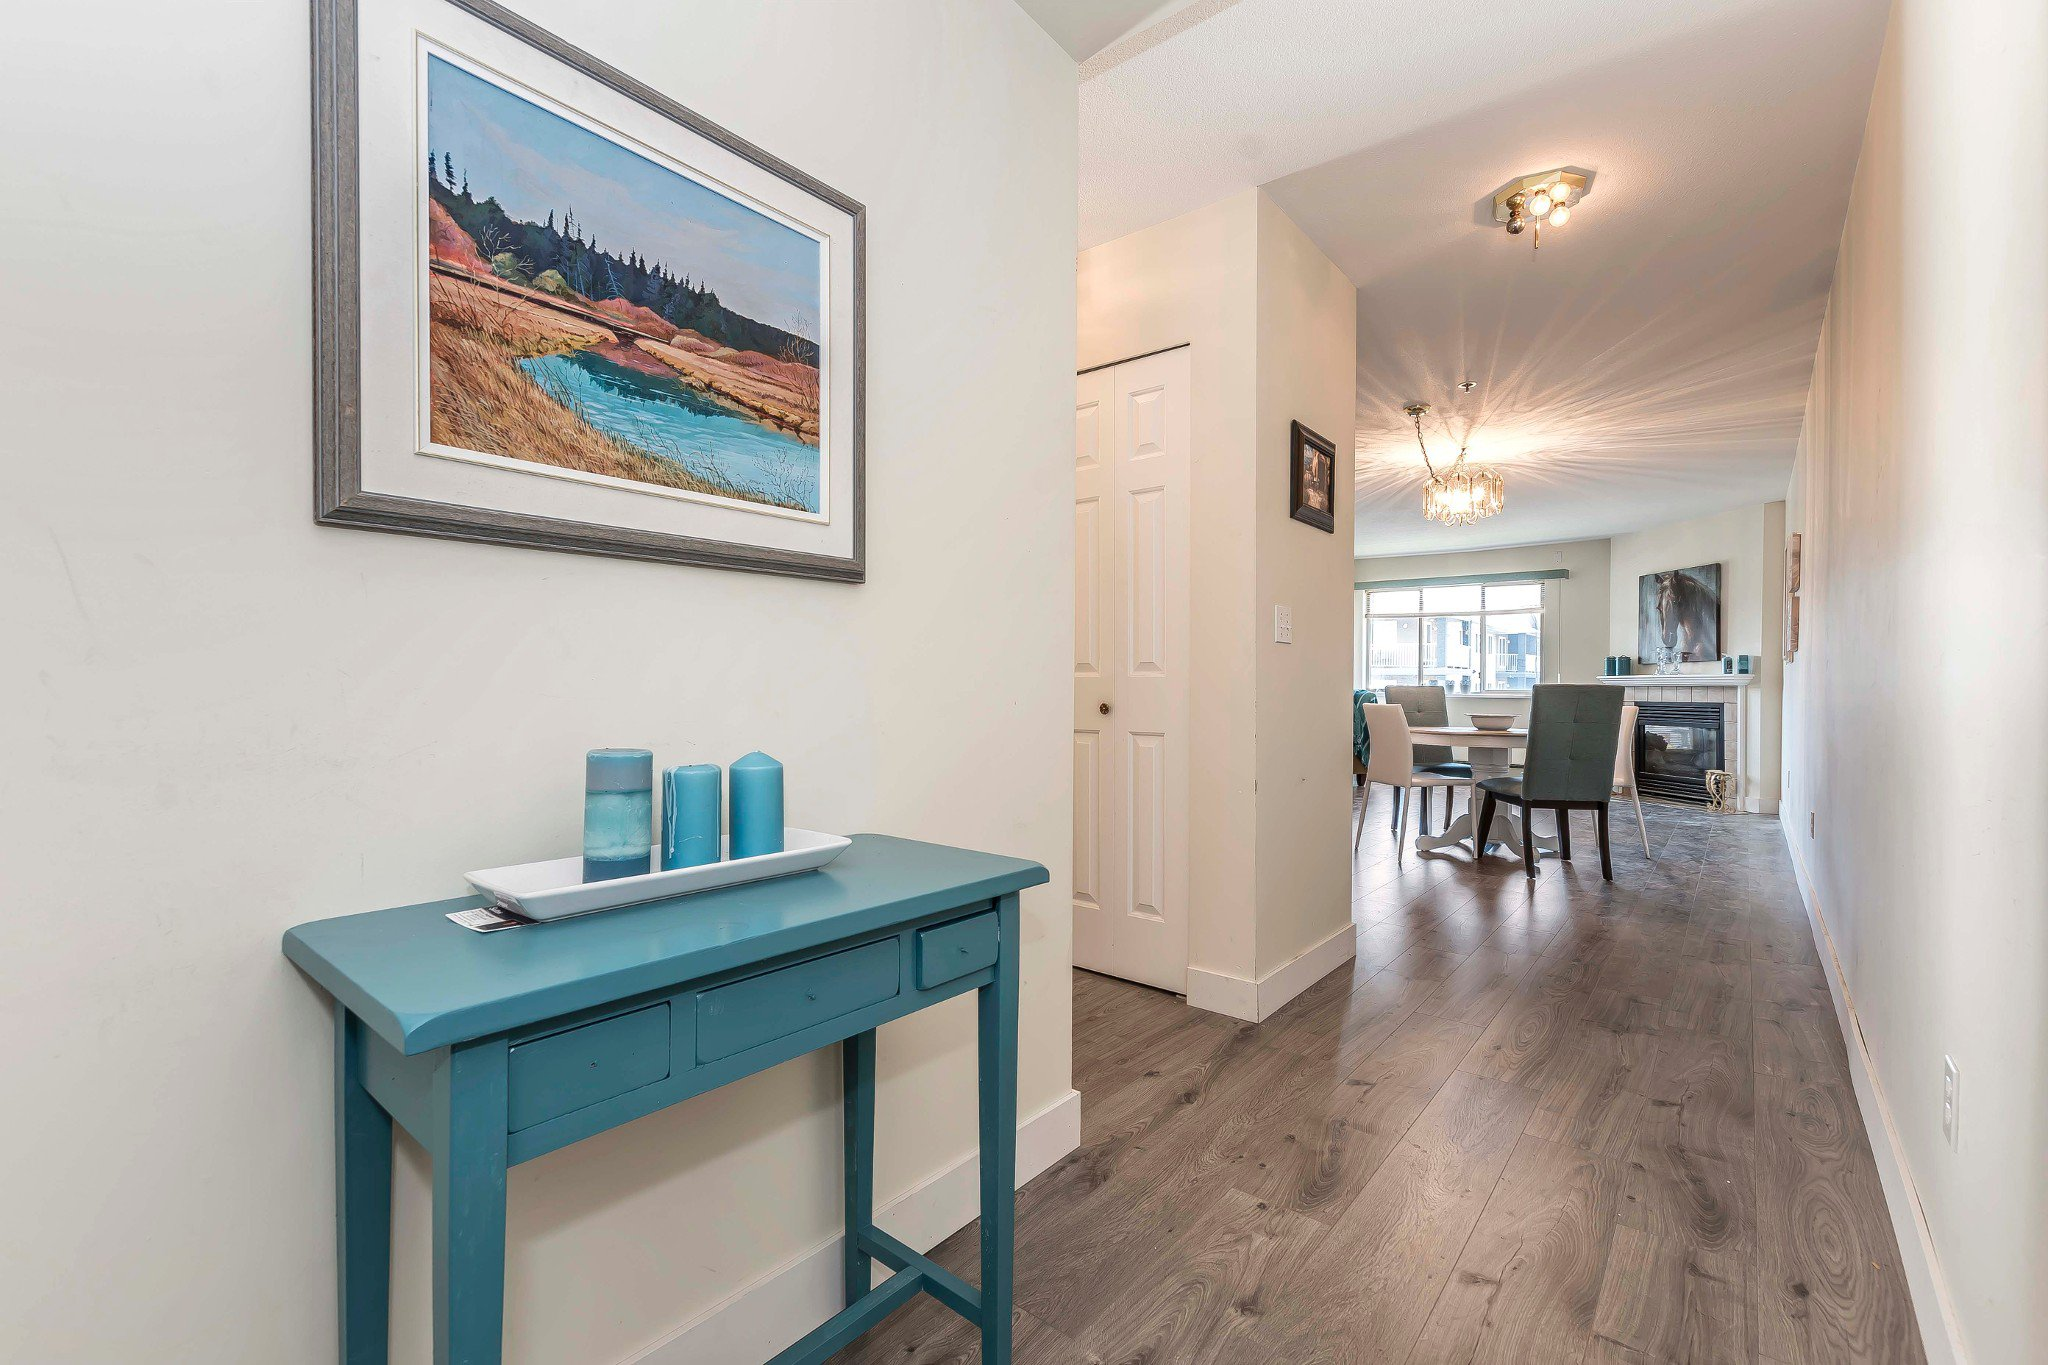 Photo 3: Photos: 305 9186 Edward Street in Chilliwack: Condo for sale : MLS®# R2218862